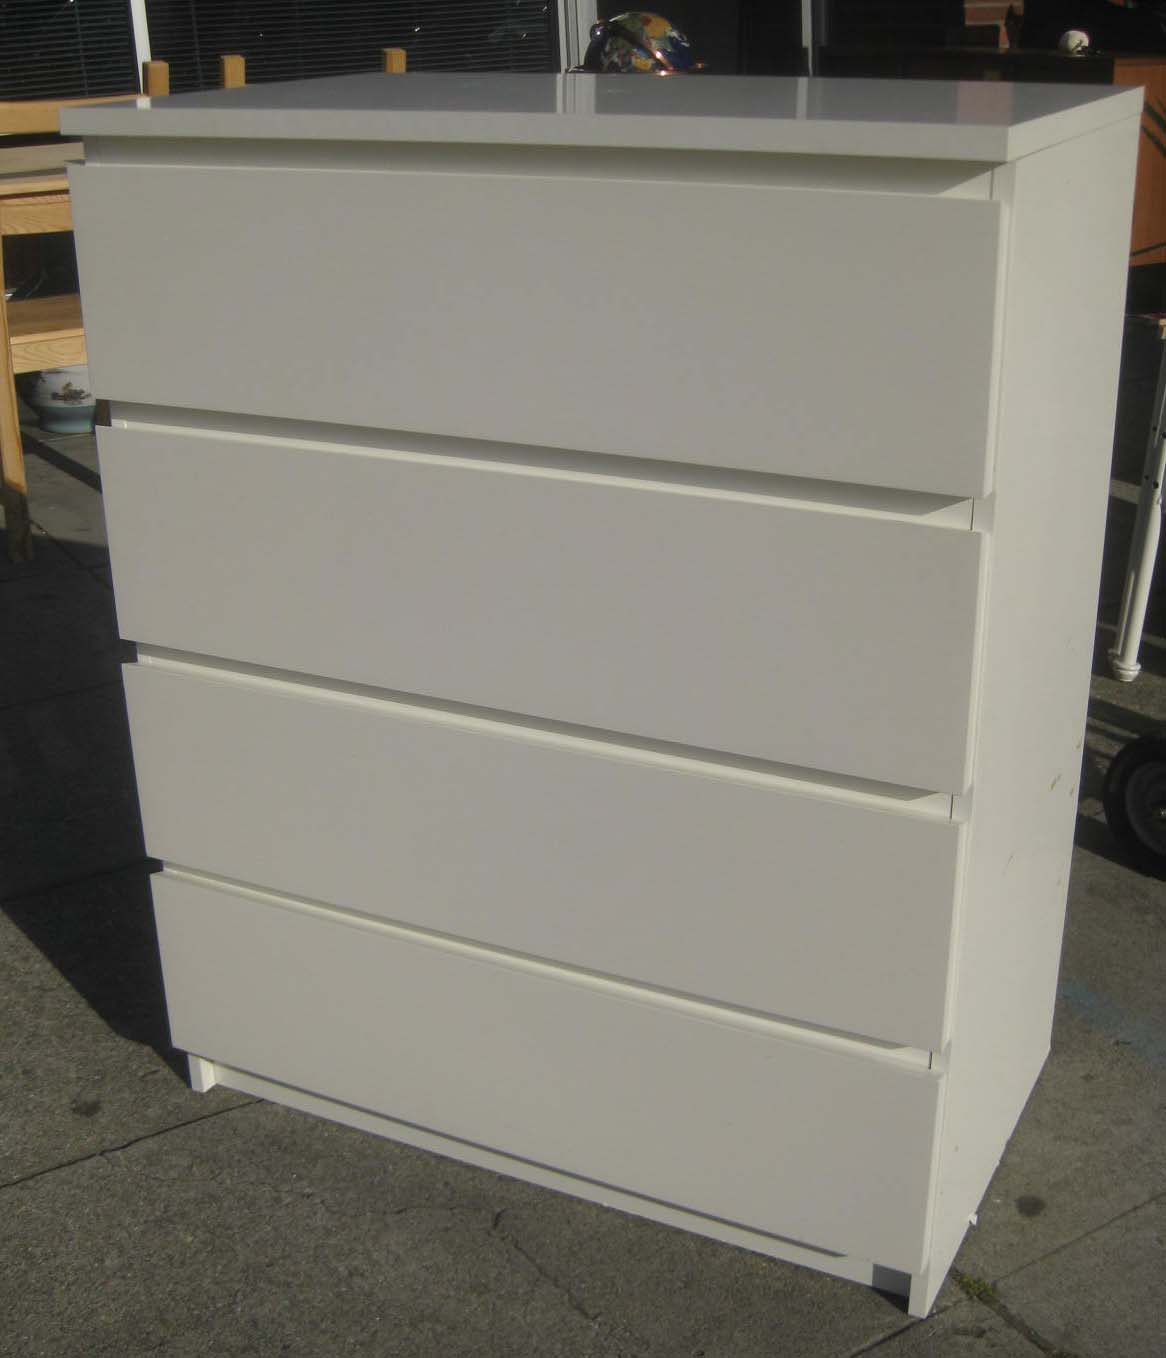 ikea bedroom furniture drawers photo - 3